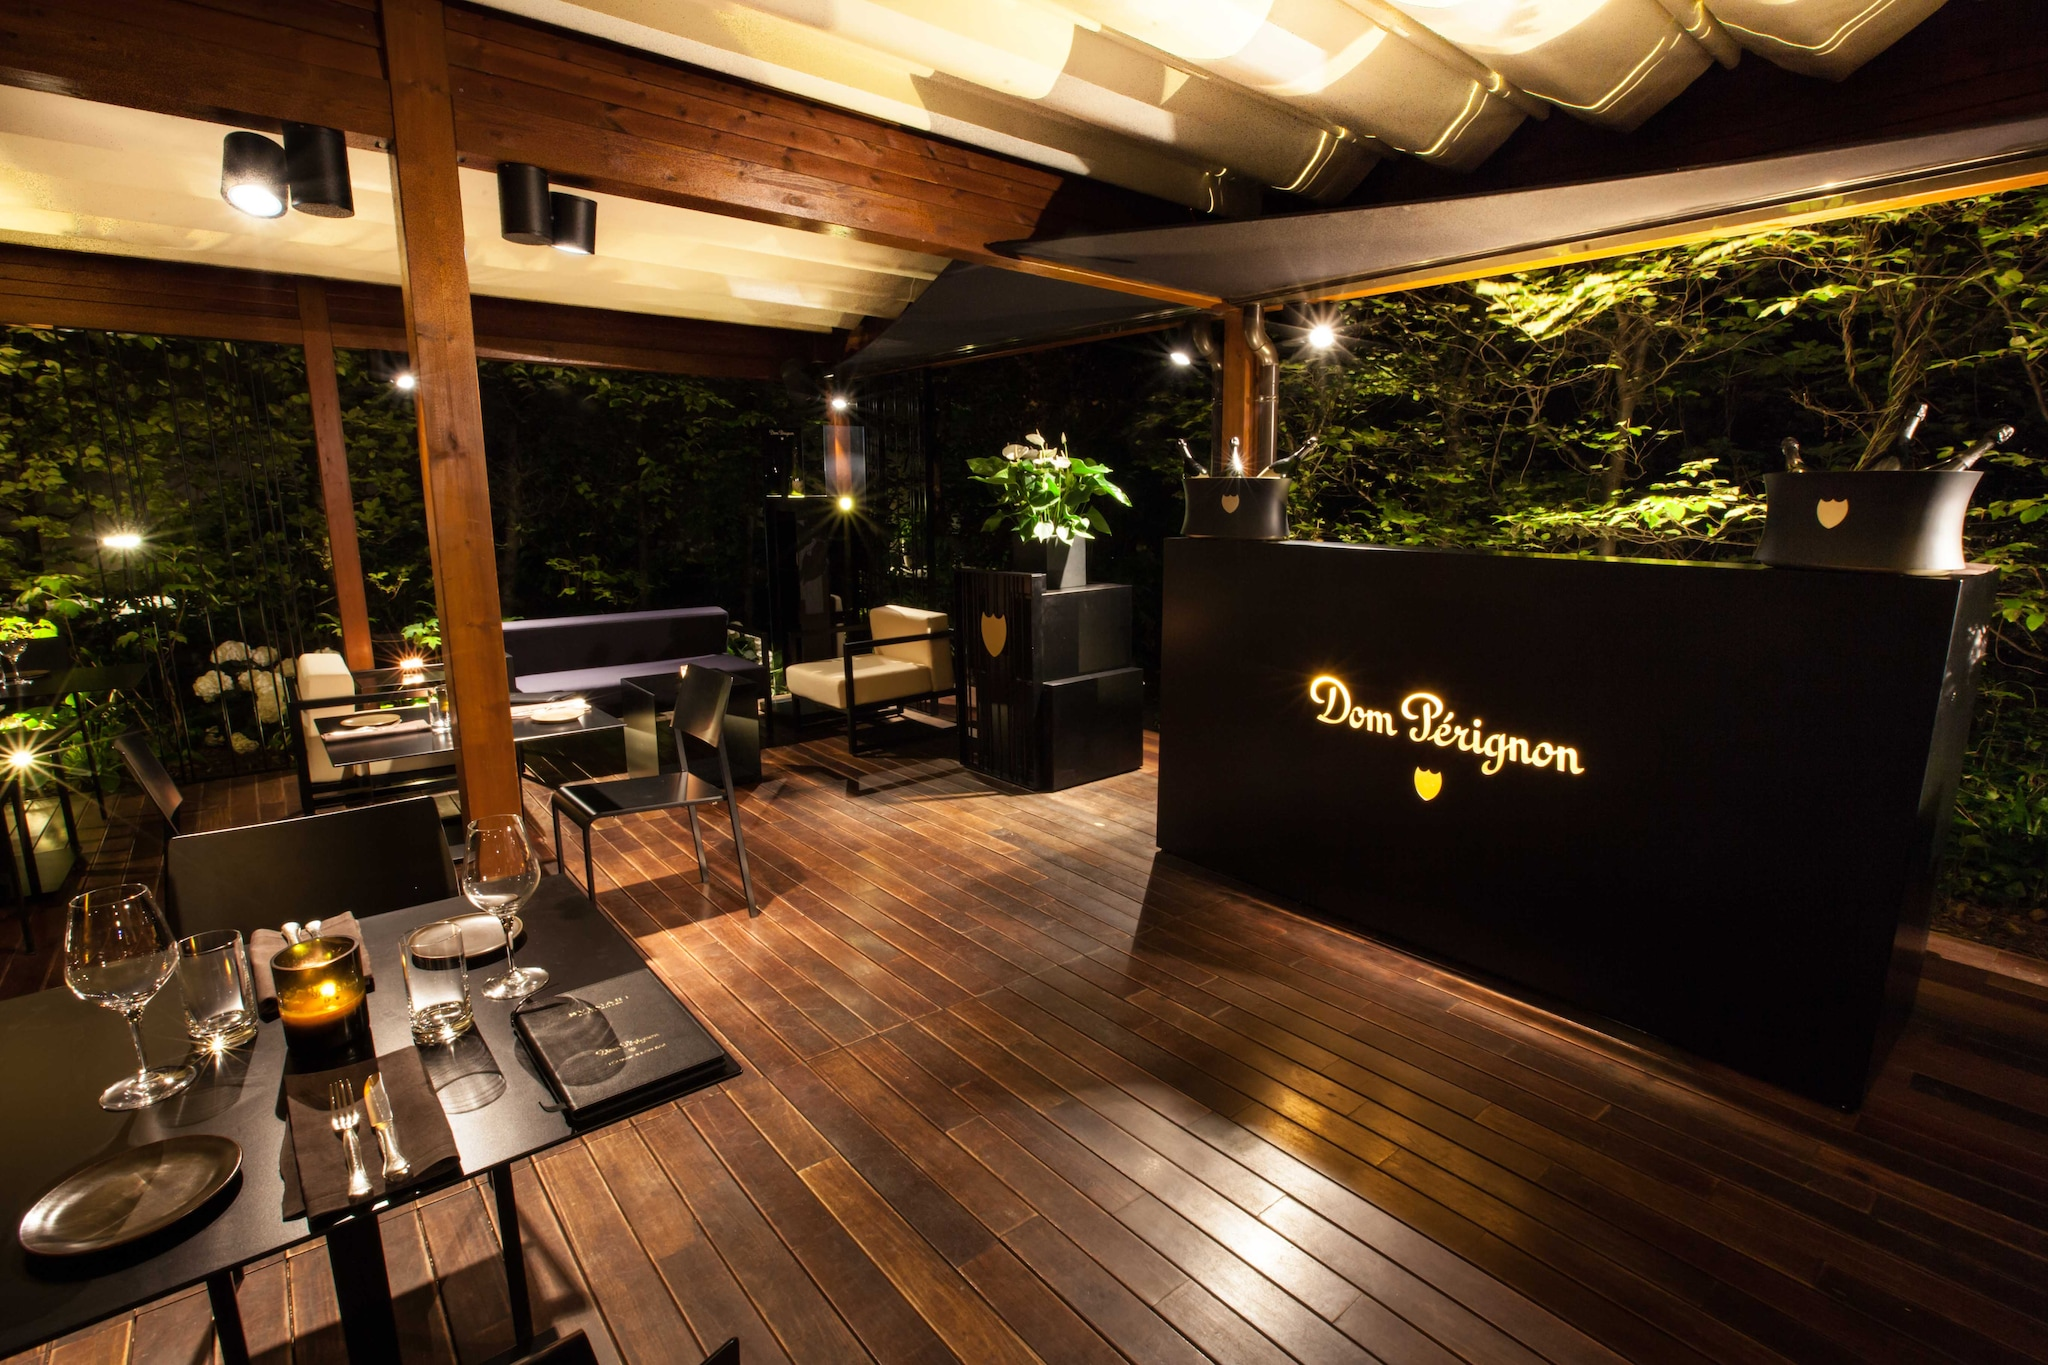 Dom Pérignon Lounge & Raw Bar in the garden of Hotel Bulgari